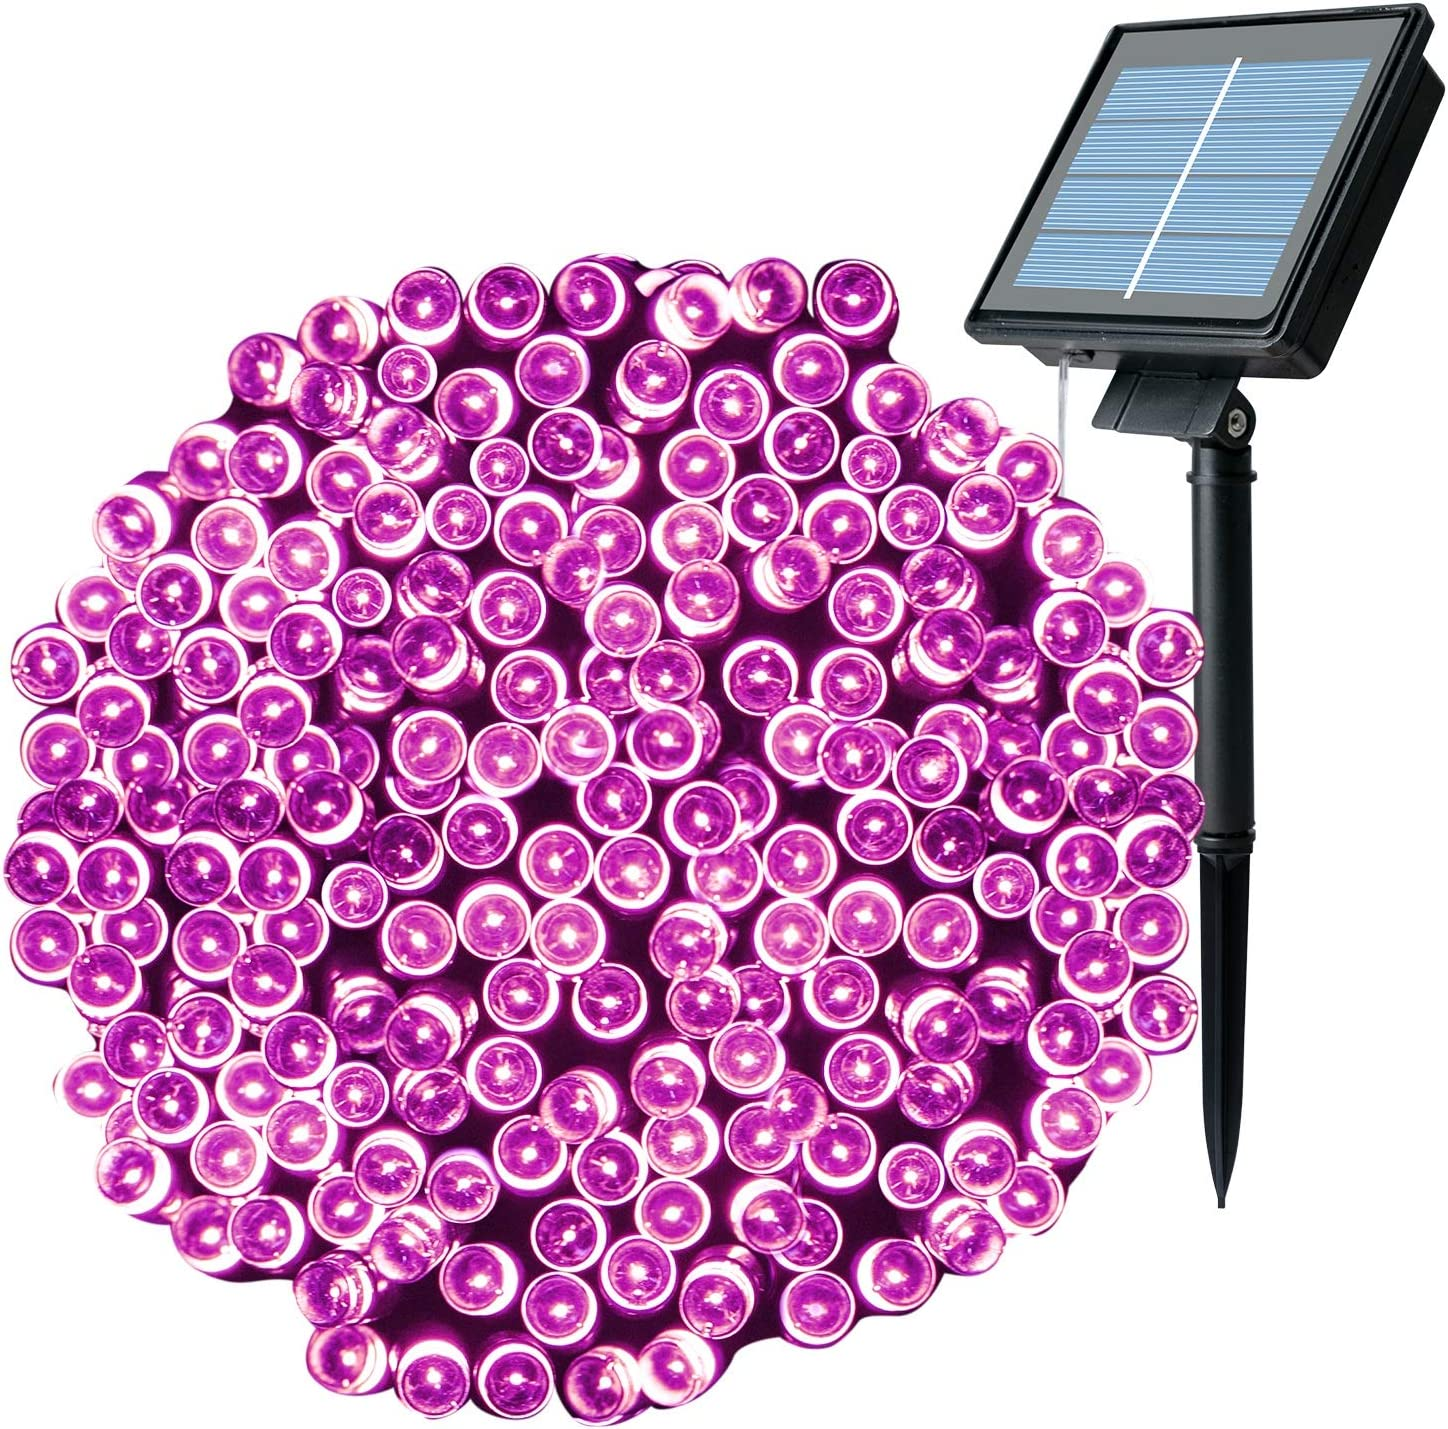 Outdoor Solar Christmas String Lights with 8 Lighting Modes, 72 Feet 200LED Waterproof Solar Powered Lights for Indoor Outside Xmas Patio Garden Yard Wedding Party Tent Tree Decor, Purple, 1 Pack